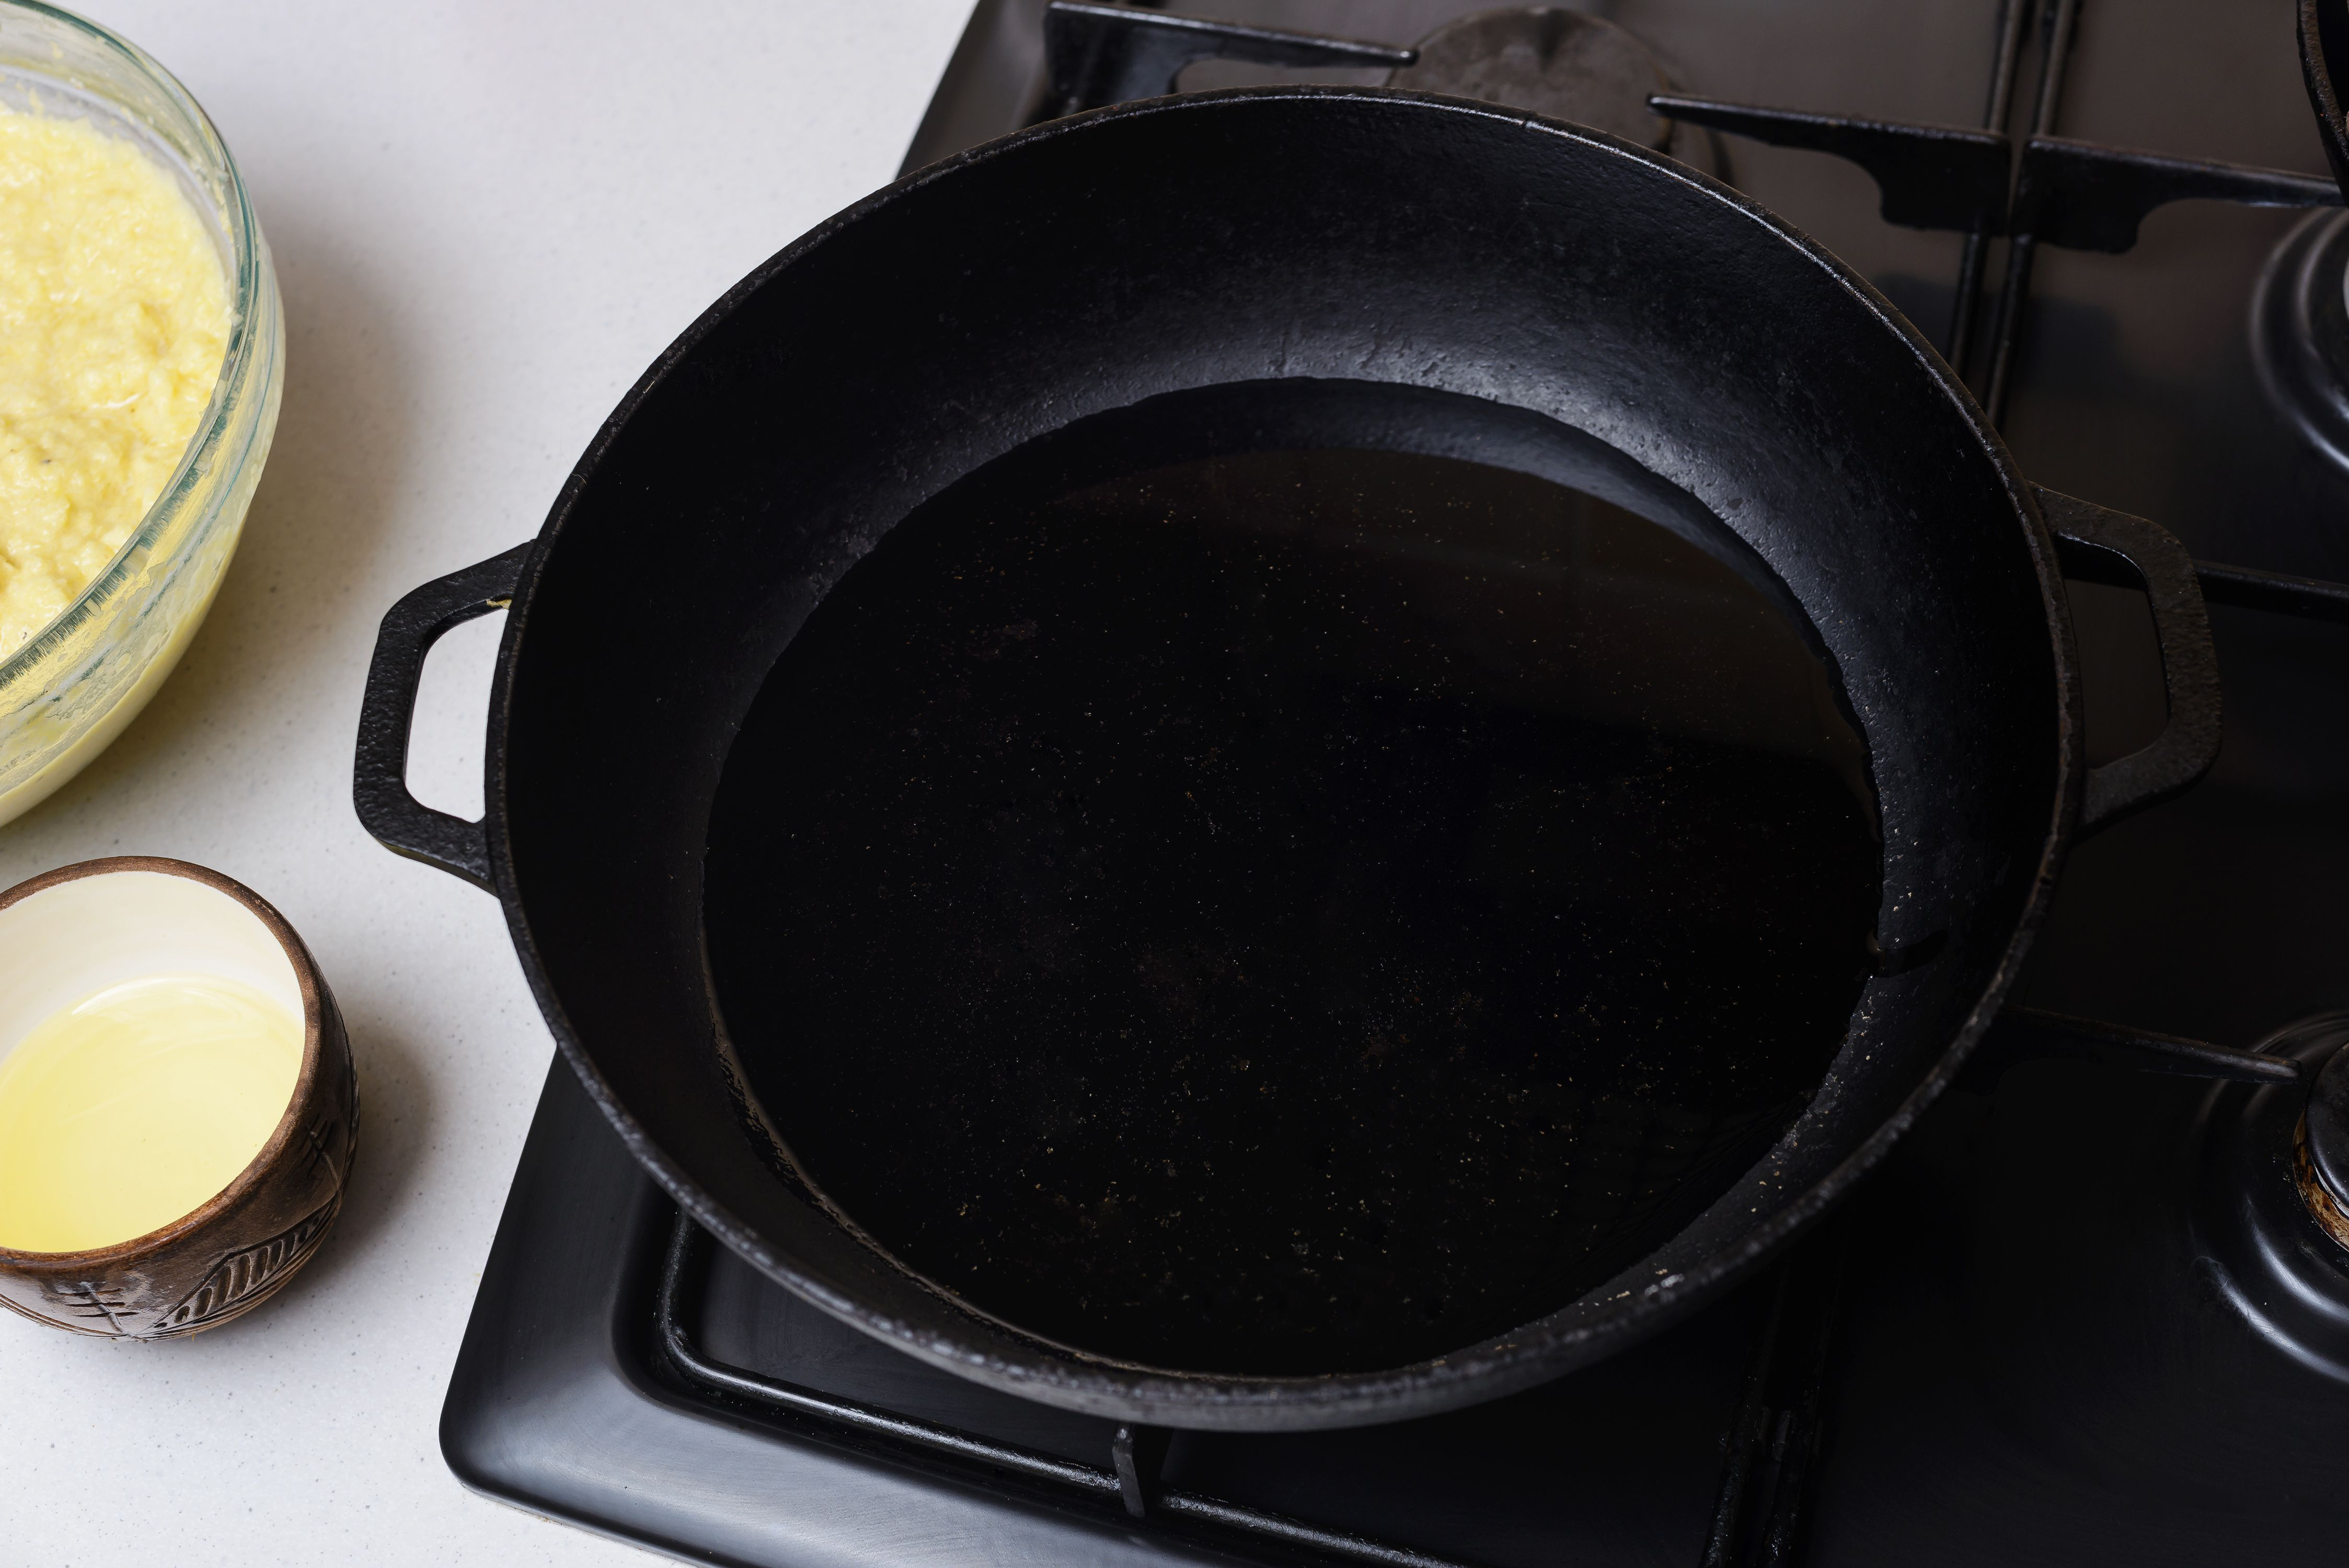 Oil in cast-iron pan on stovetop